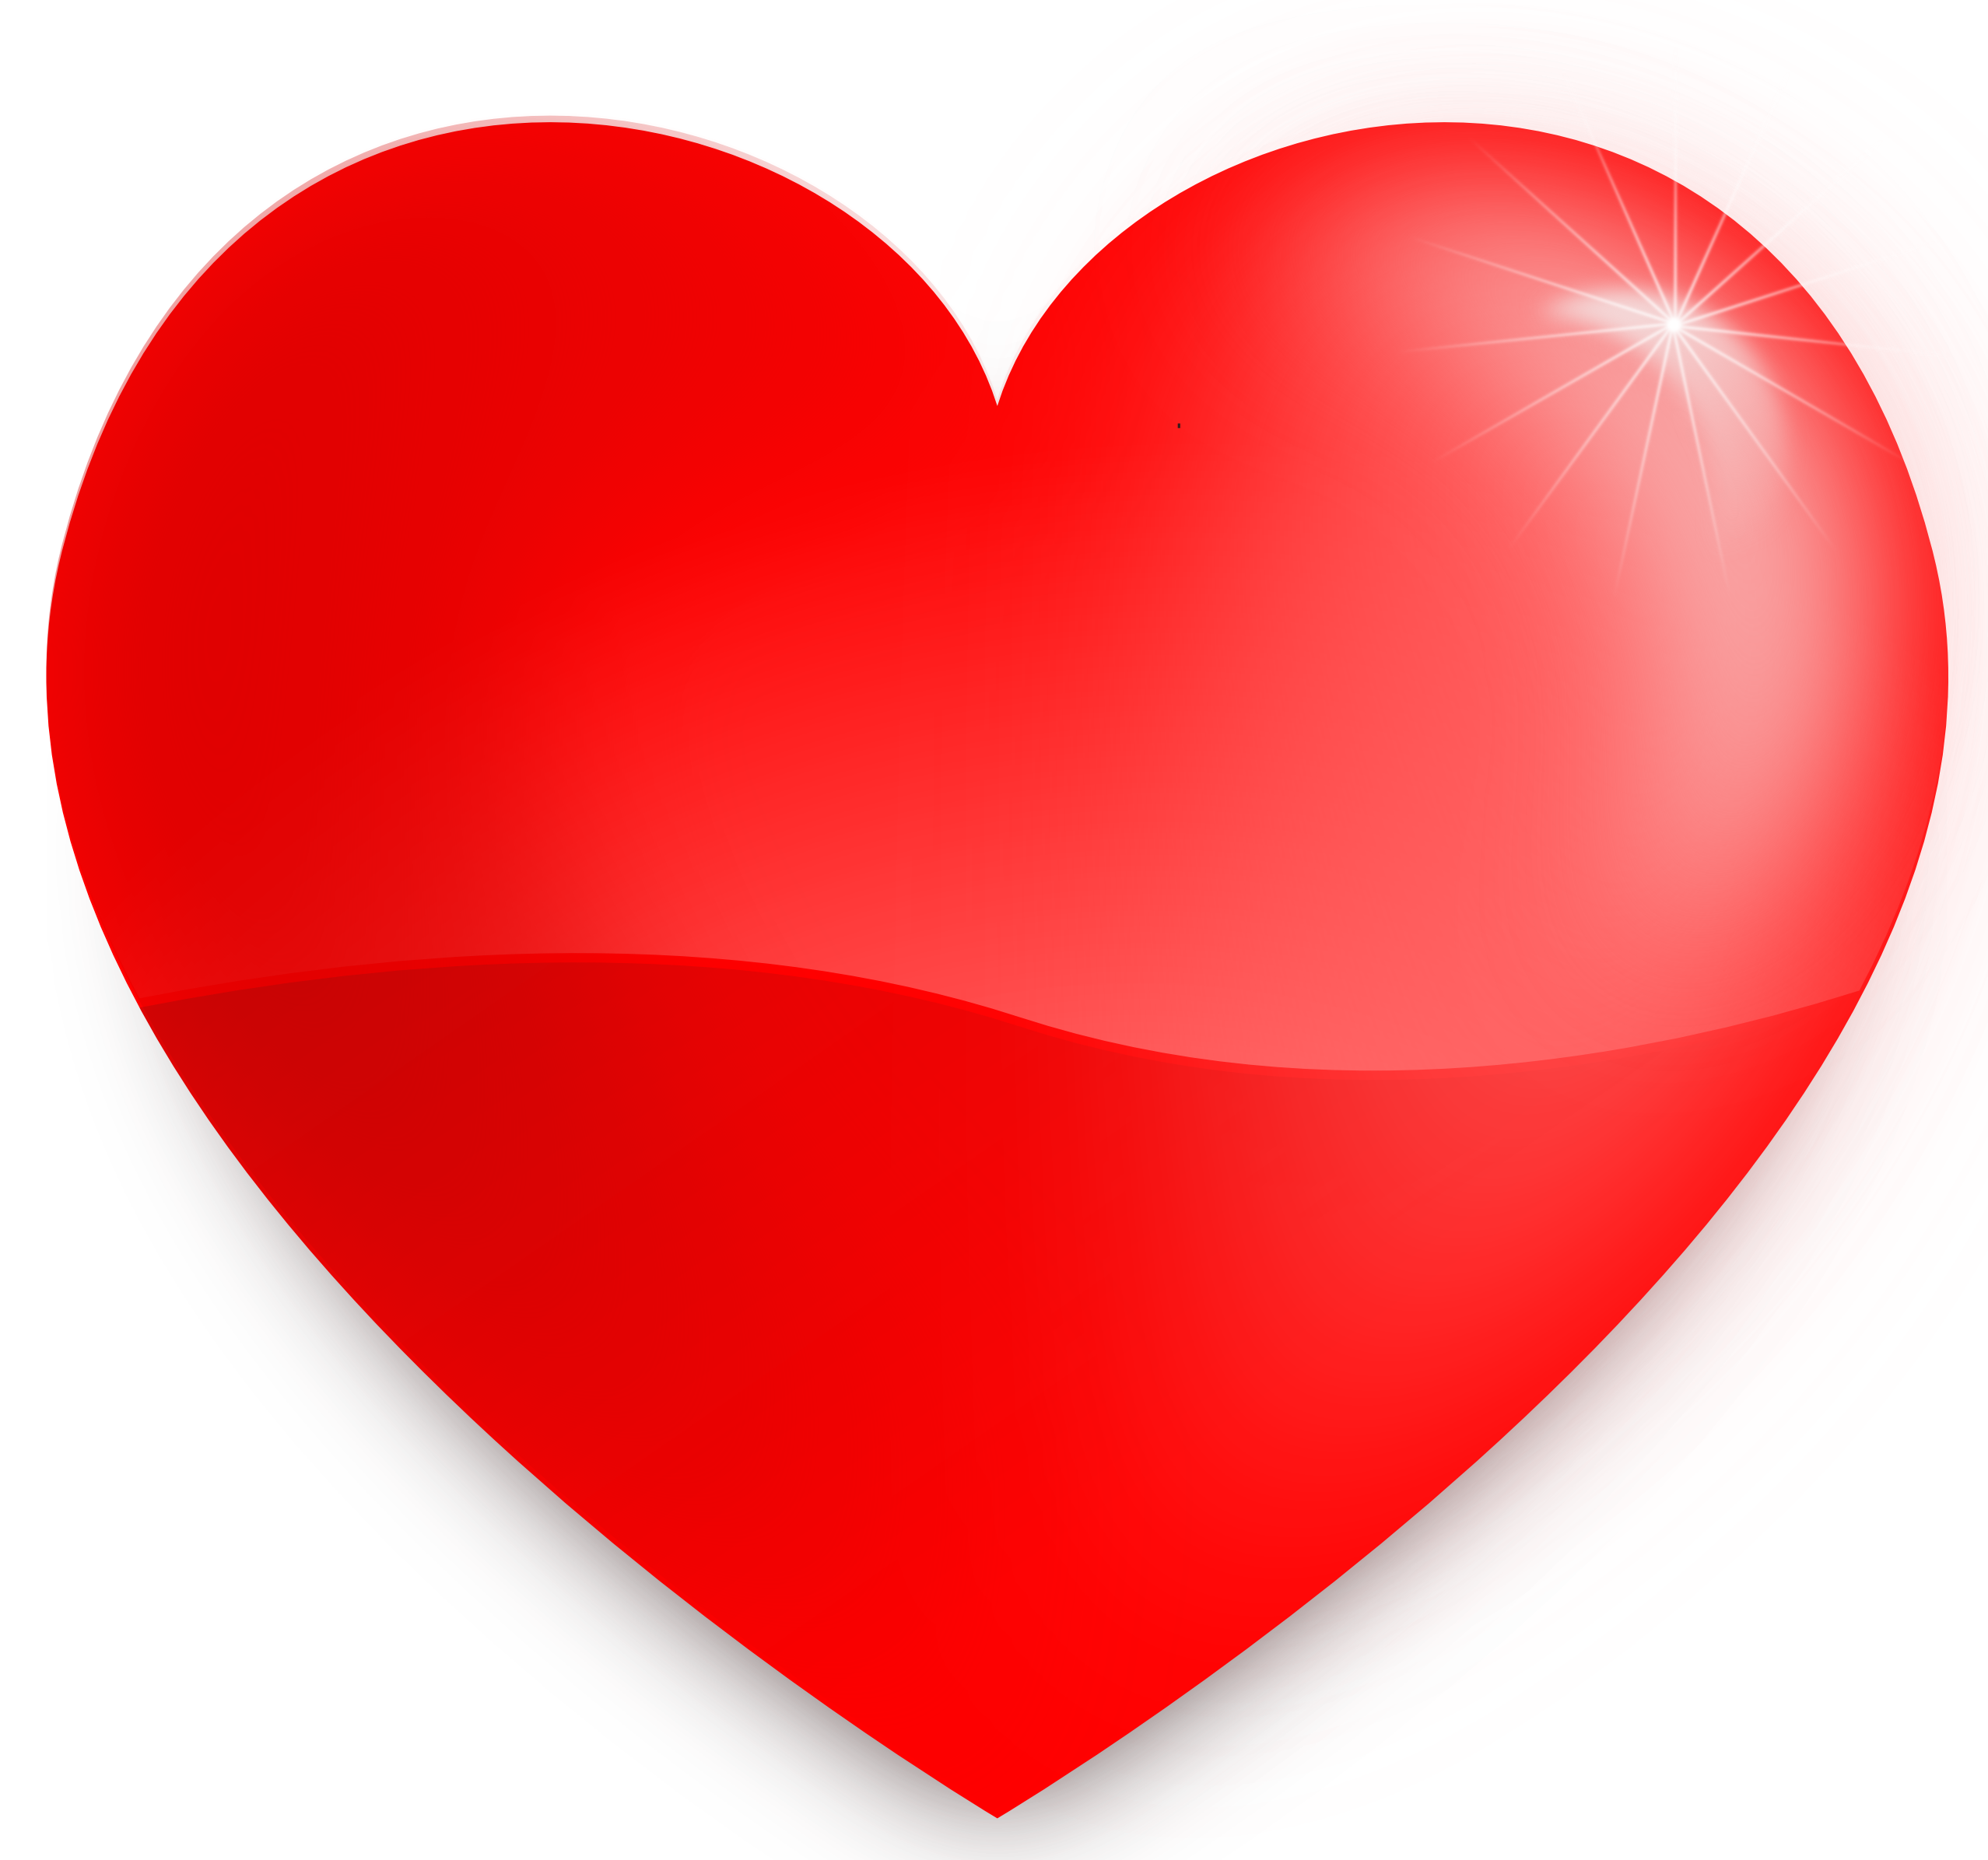 Love heart nineteen isolated. Hearts transparent png